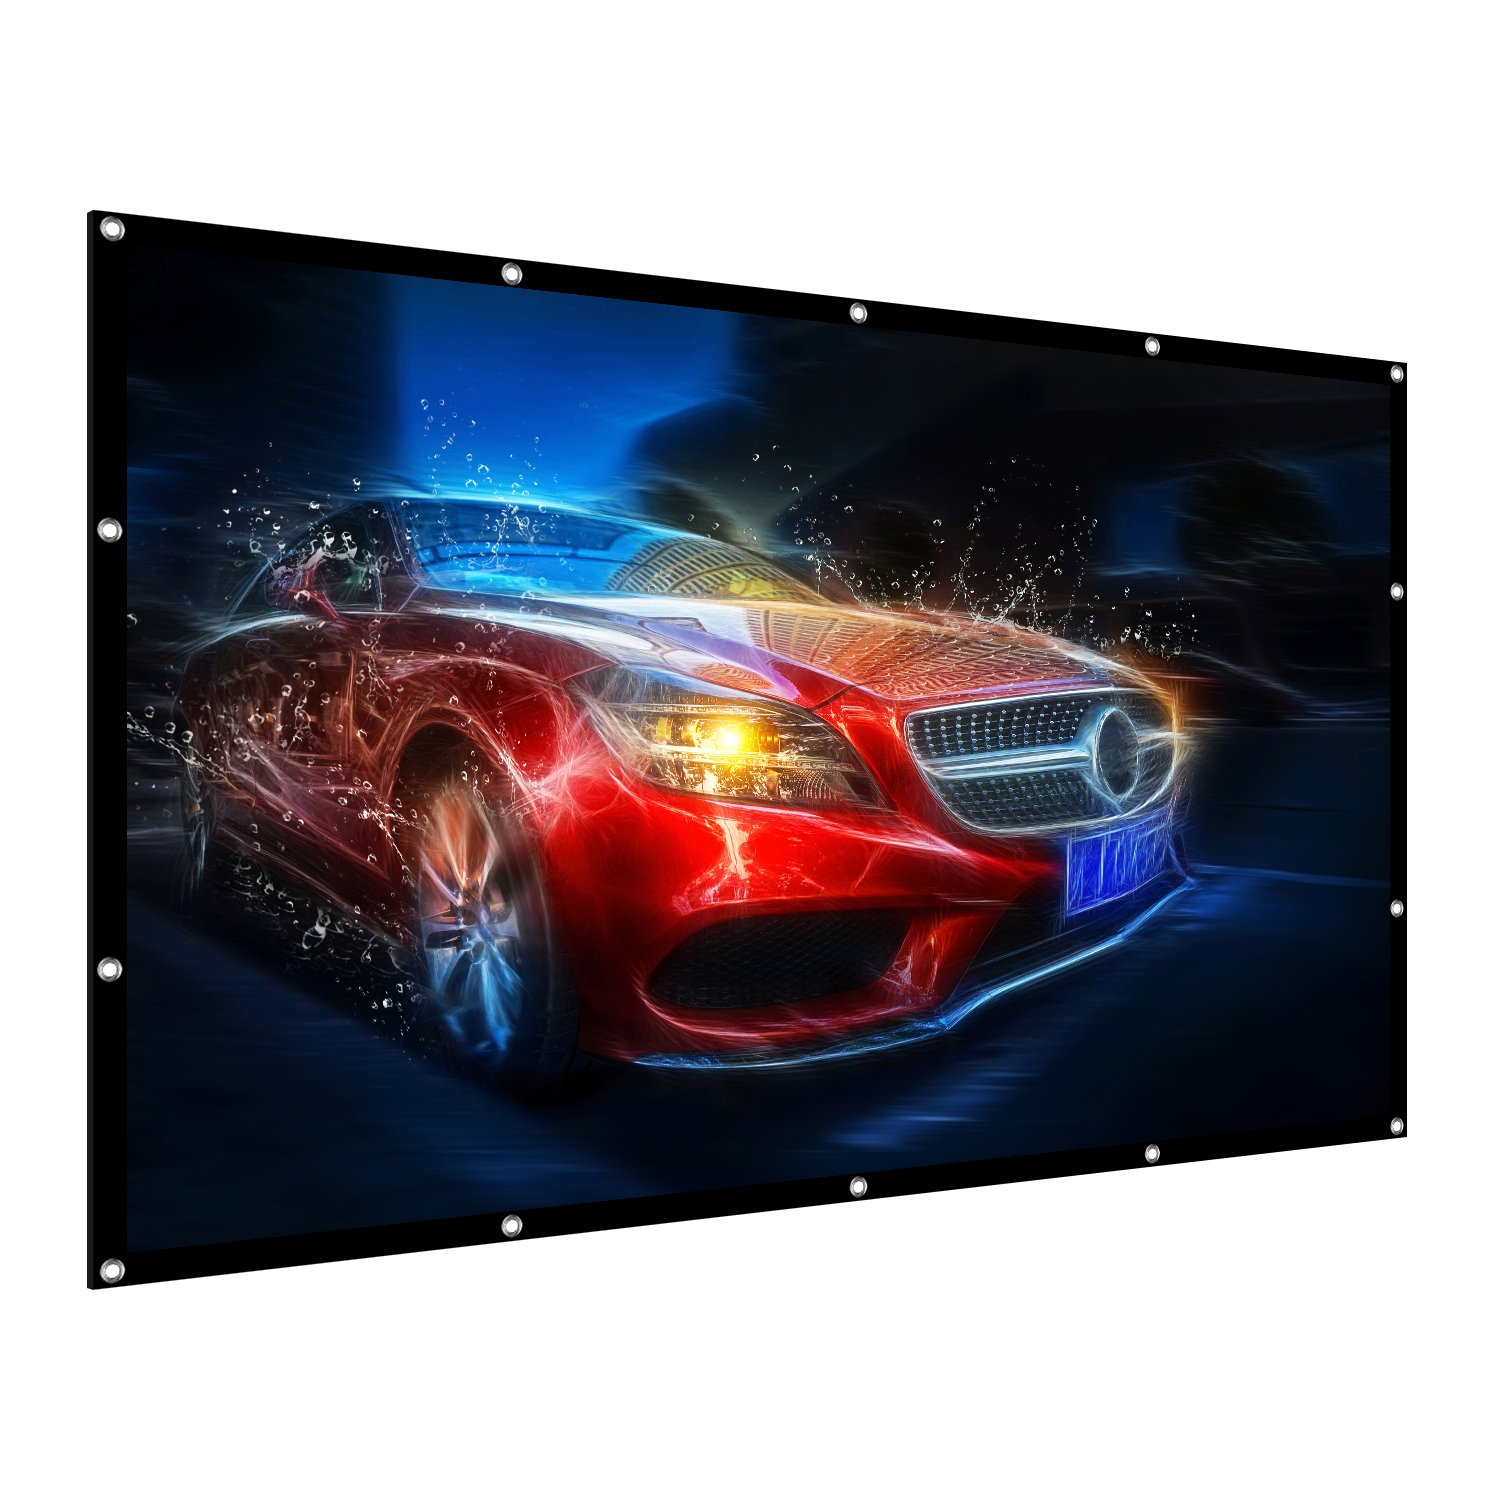 Projection Screen, 100'' 16:9 HD Outdoor Indoor Portable Folding Movie Screen Support Double Sided Projection for Home Theater Presentation Education Public Display etc